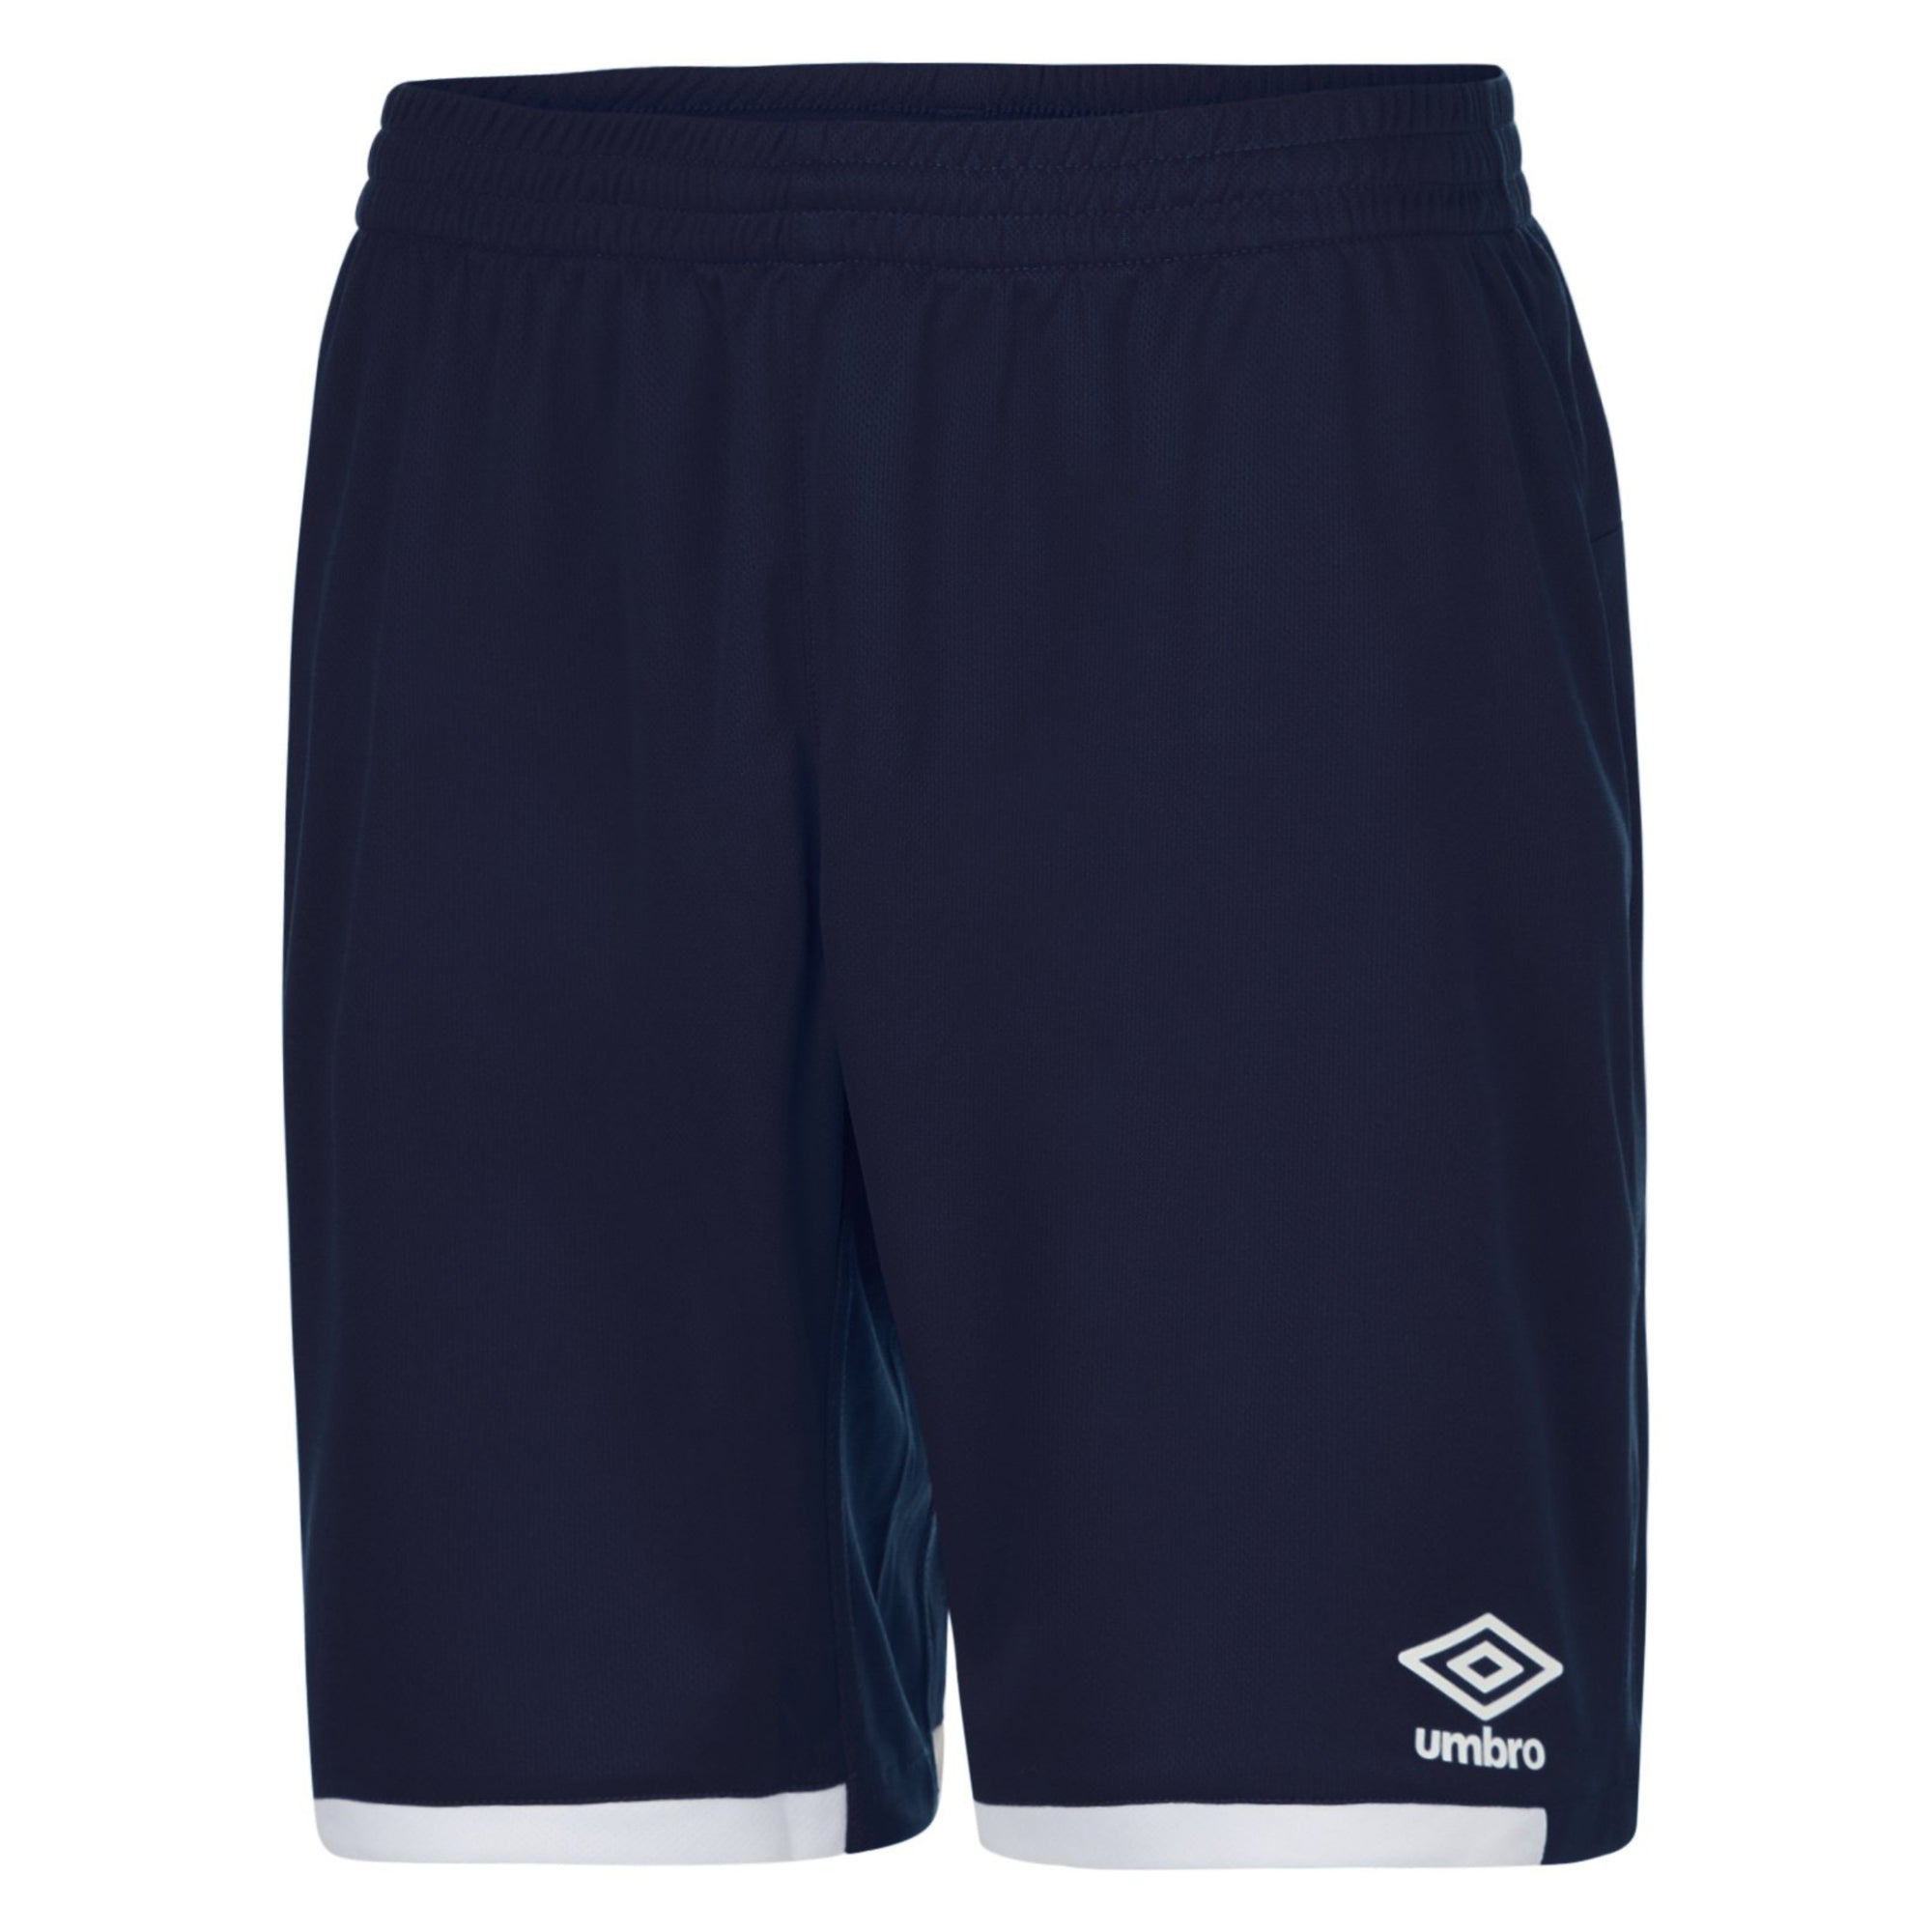 Navy Umbro Premier shorts with contrast white hems